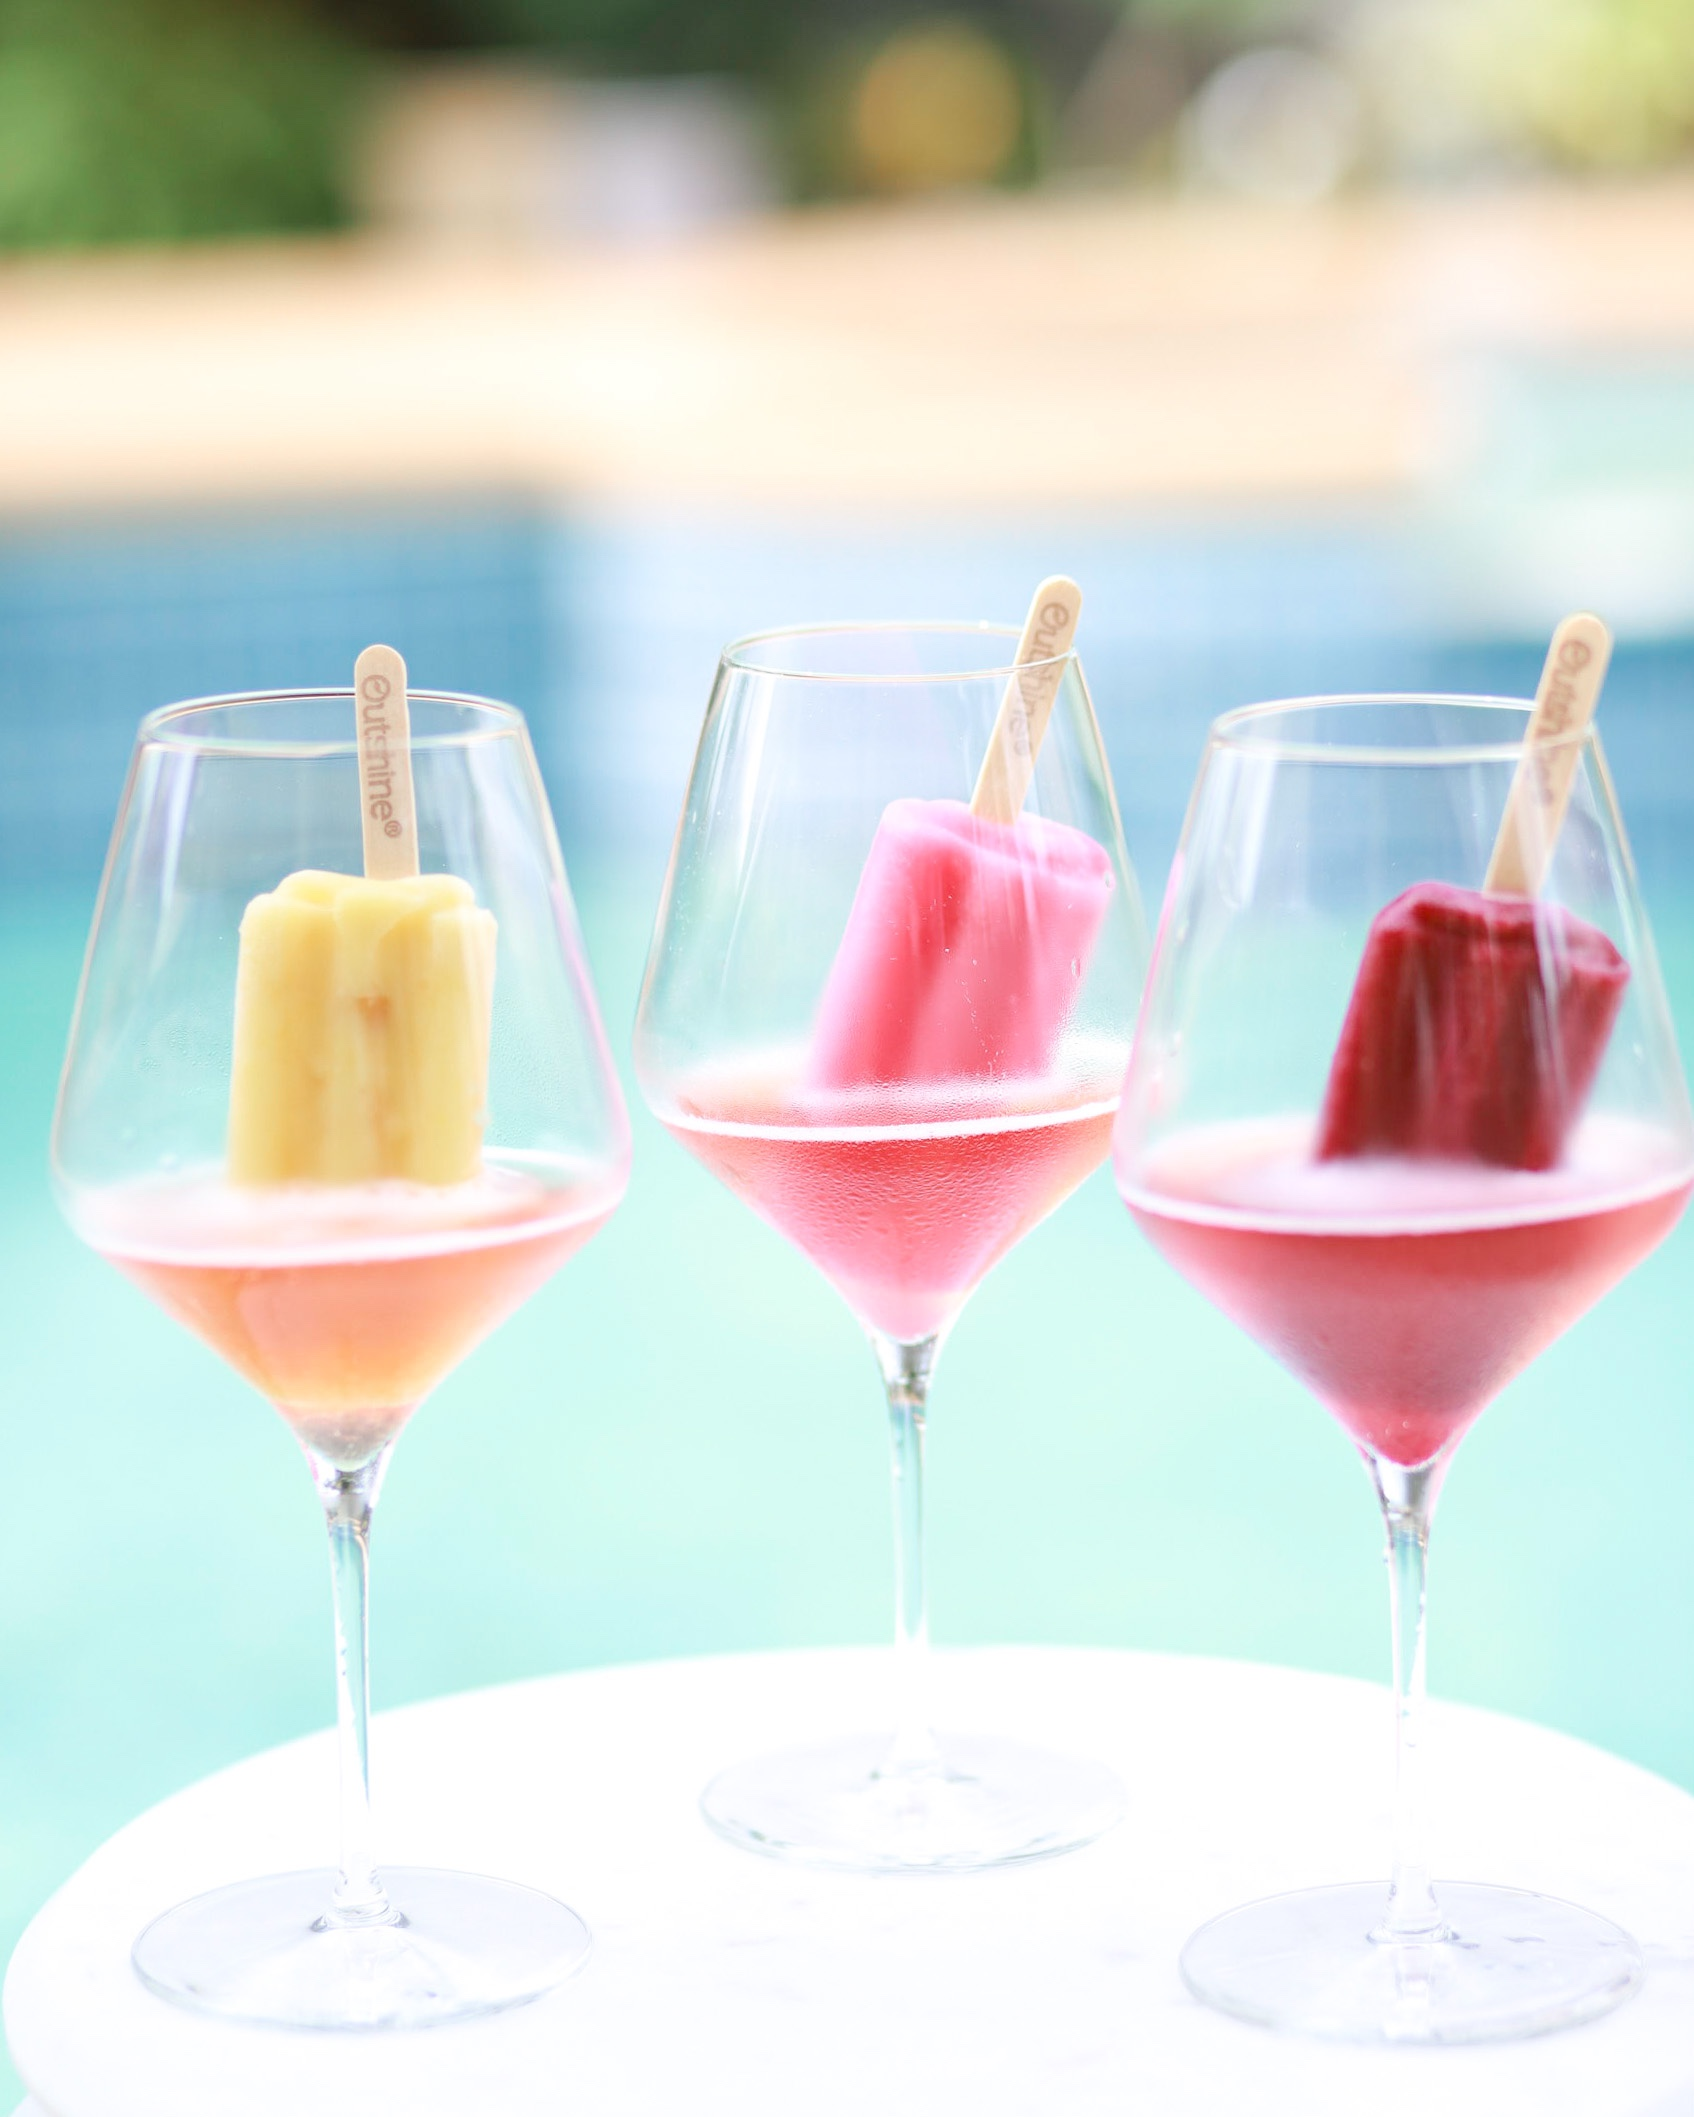 PROSECCO POPSICLE COCKTAIL